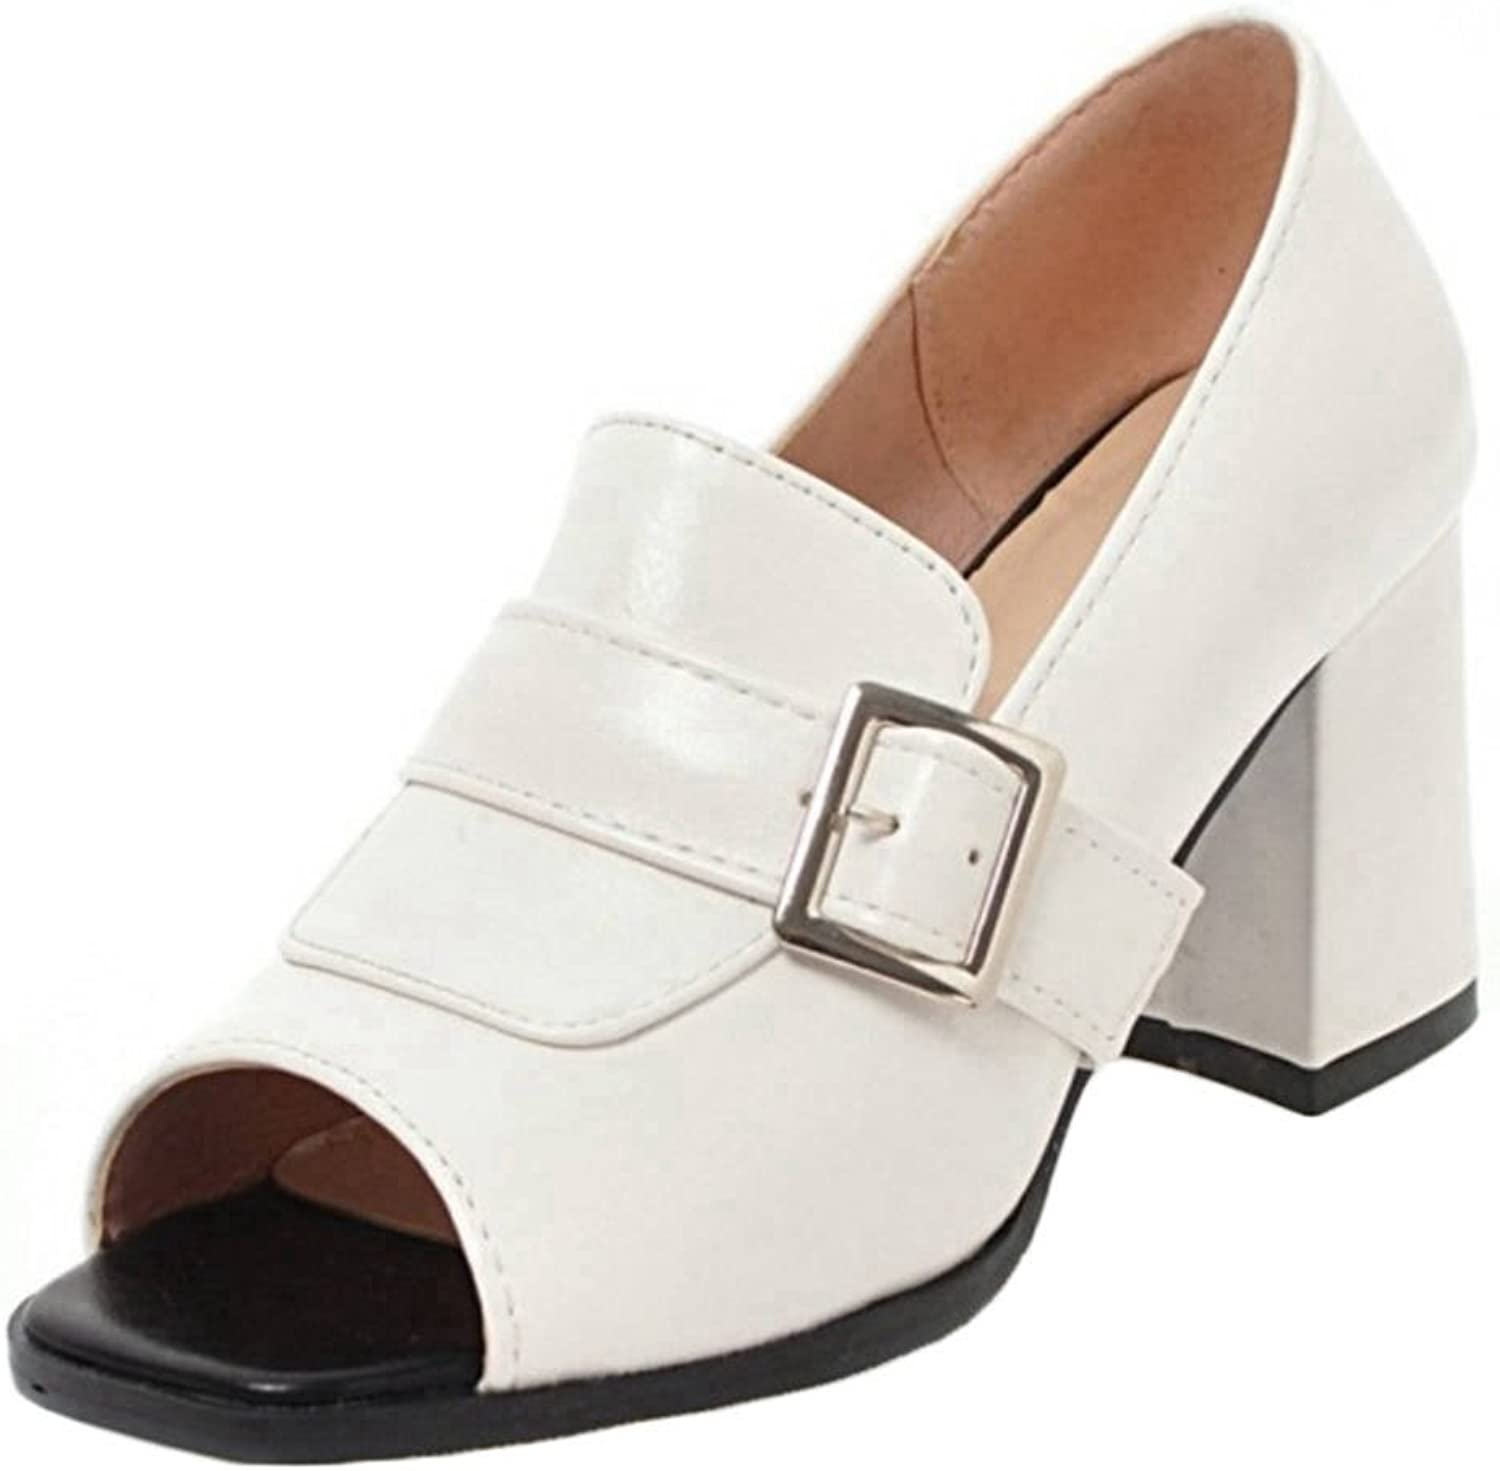 Smilice Casual Sandals with Chunky and Peep Toe Fashion shoes with Plus Size Available